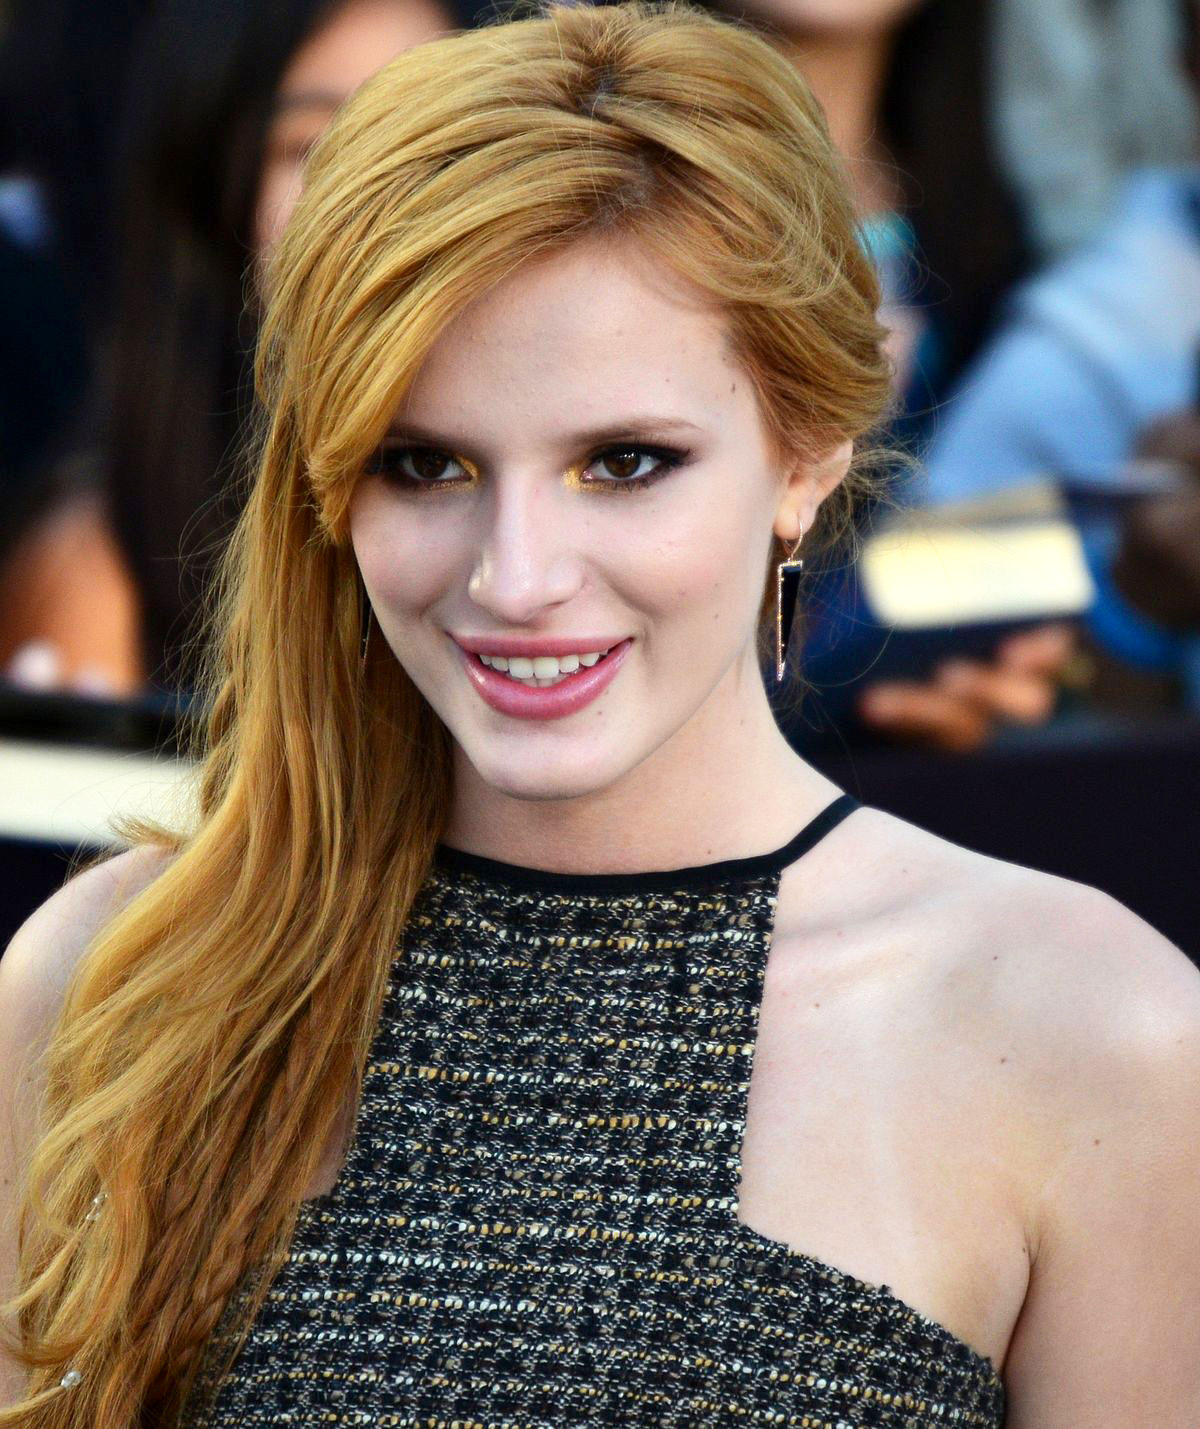 Photo of Bella Thorne: American actress, singer, author, model and dancer